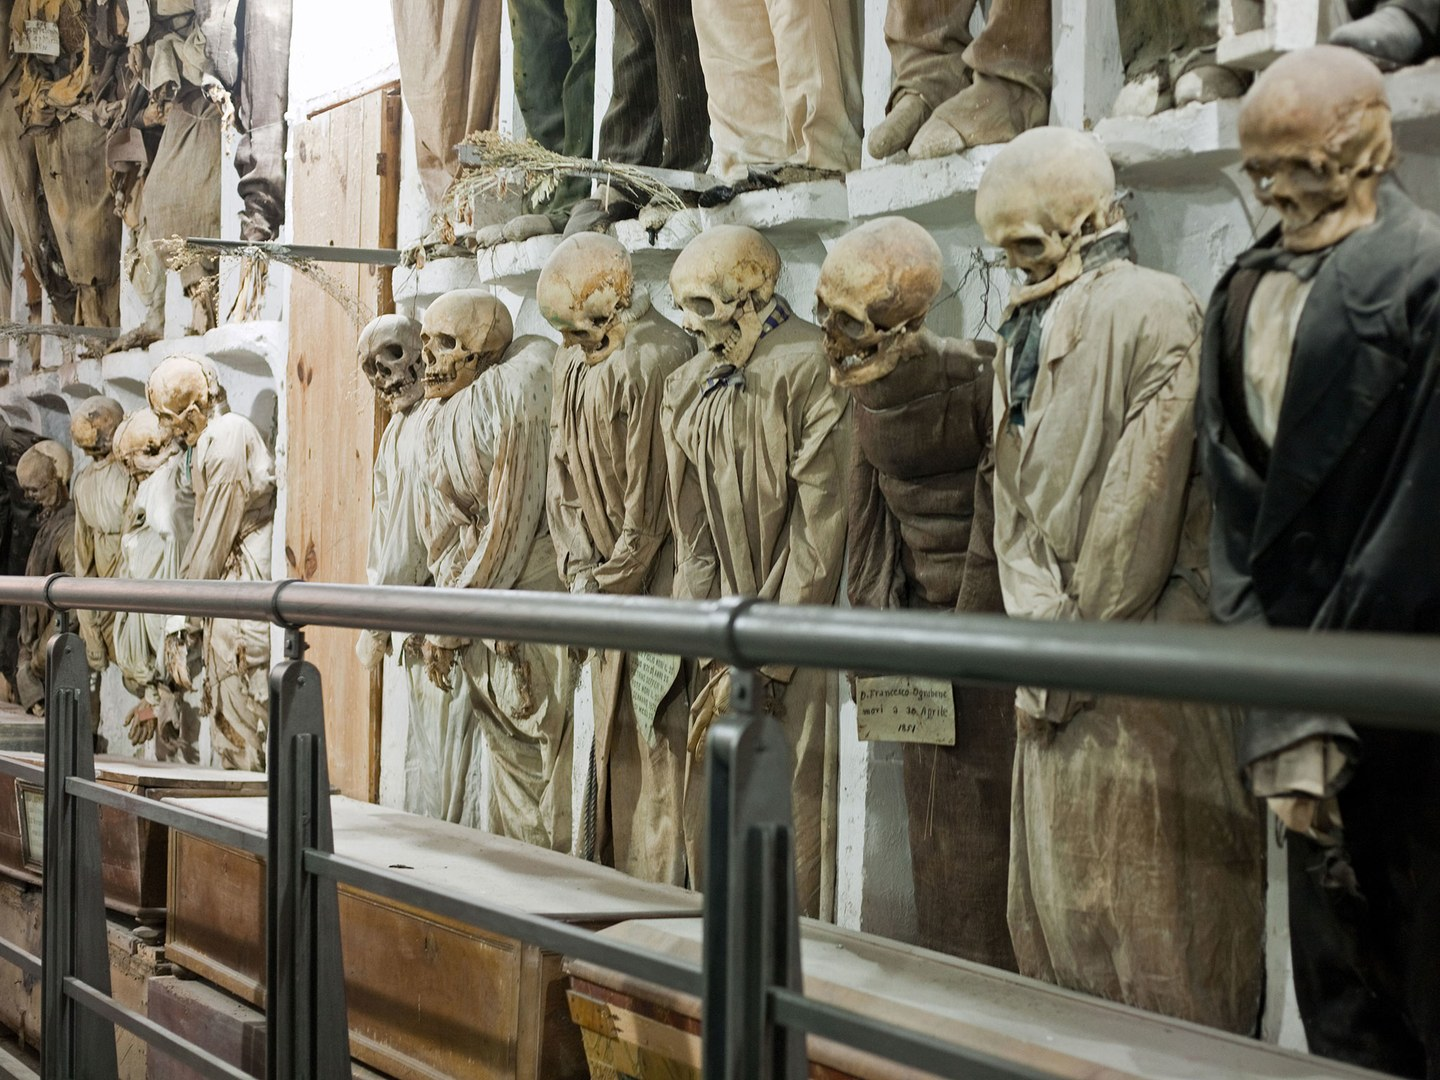 20 Architectural Scariest Places In The World - Capuchin Catacombs Palermo Sicily Italy